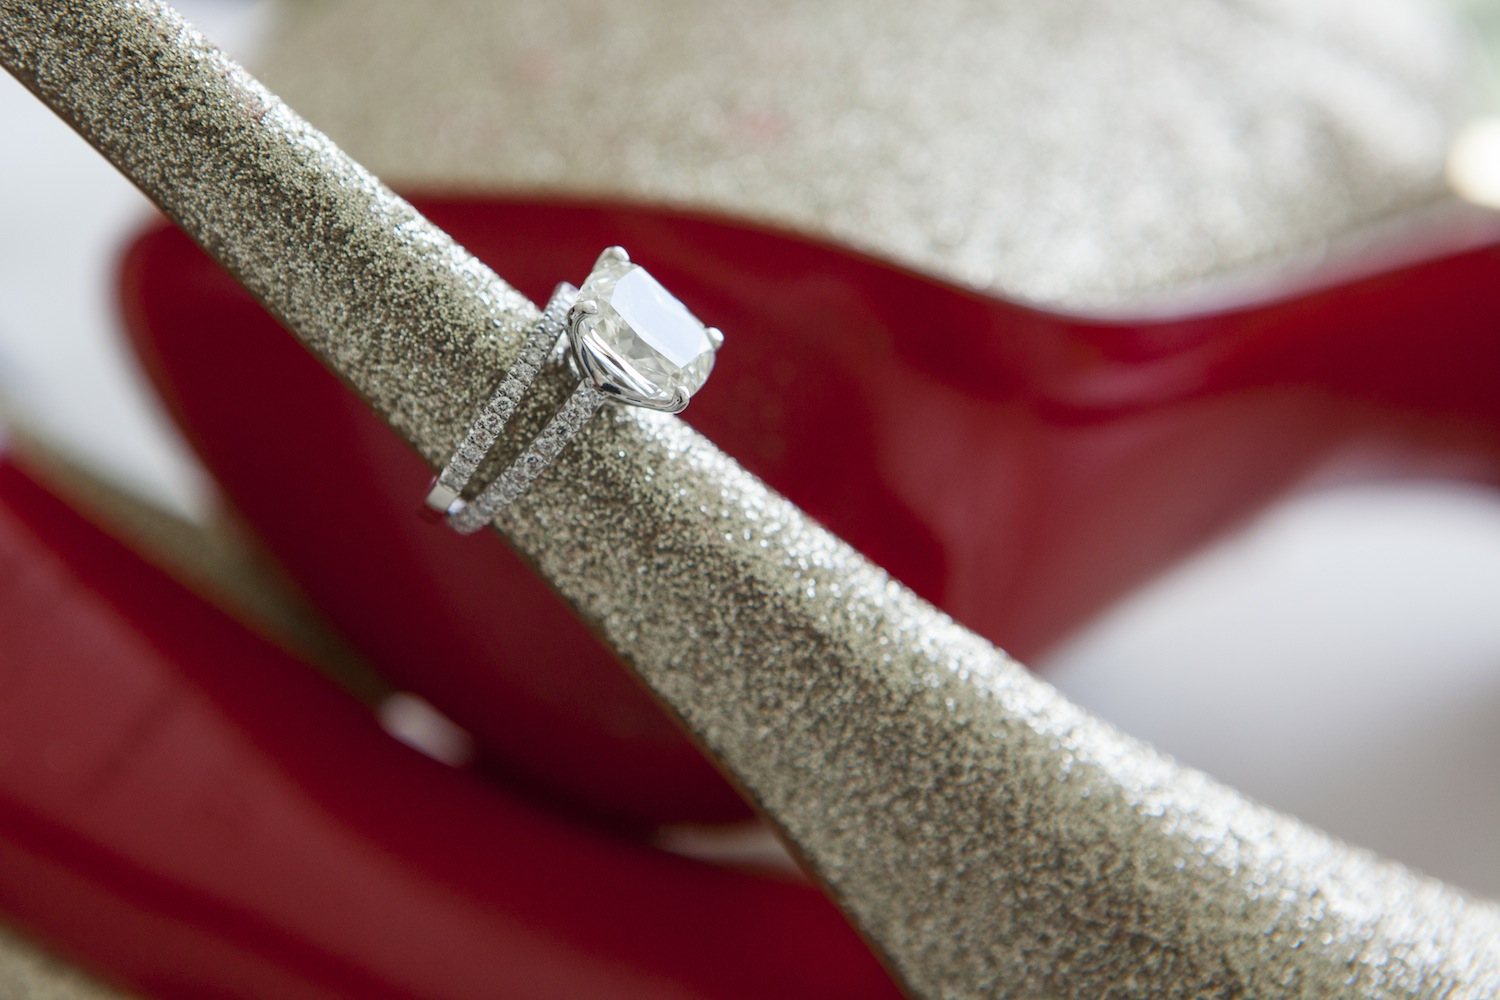 Engagement ring on shoe heel get the look of keleigh sperry's engagement ring